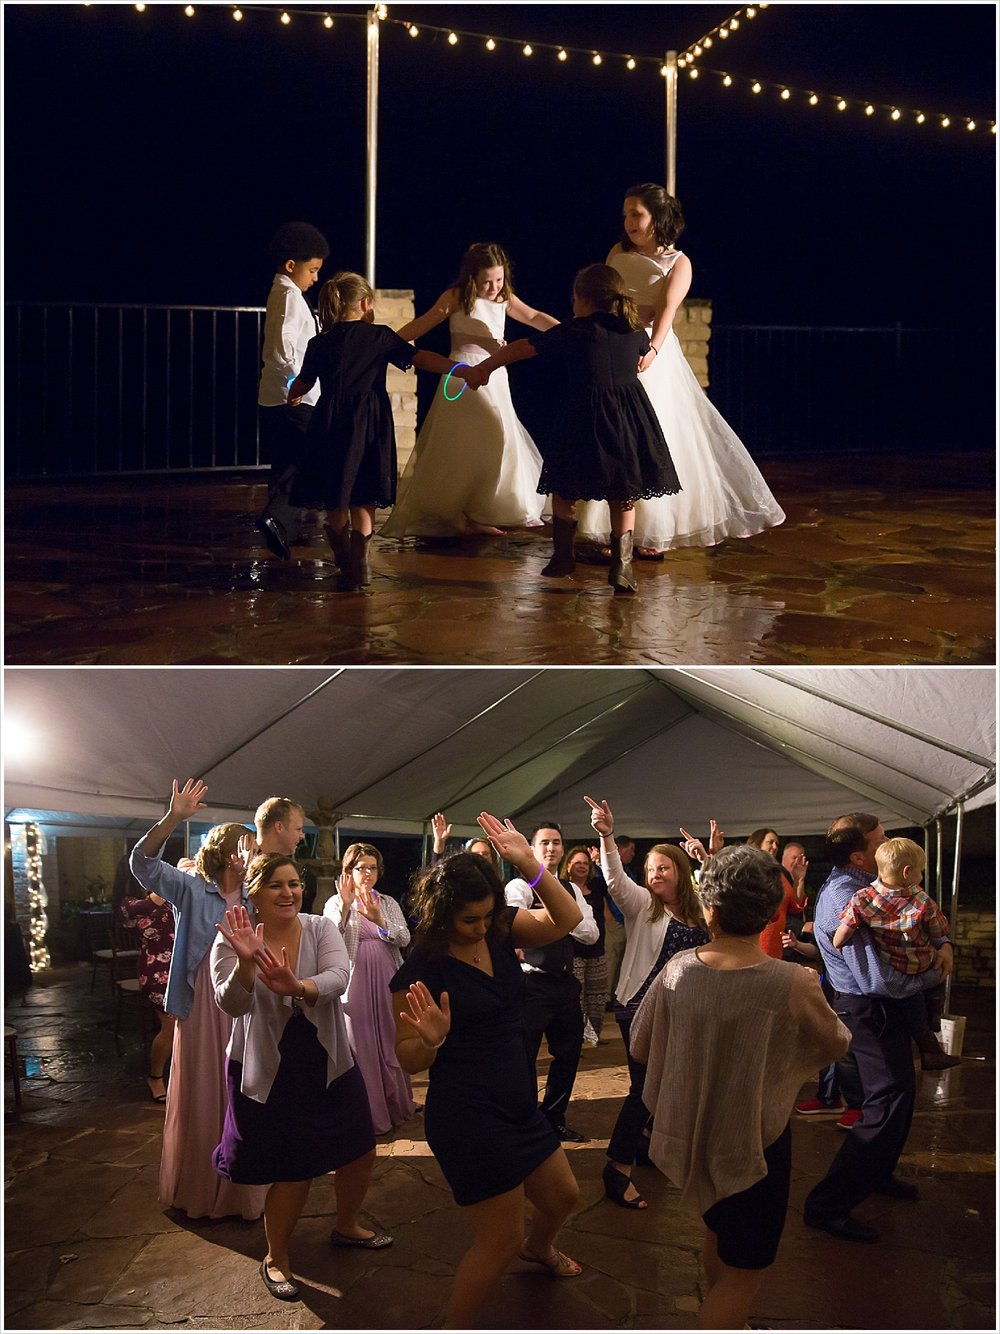 Children dance in the rain at wedding reception at La Rio Mansion